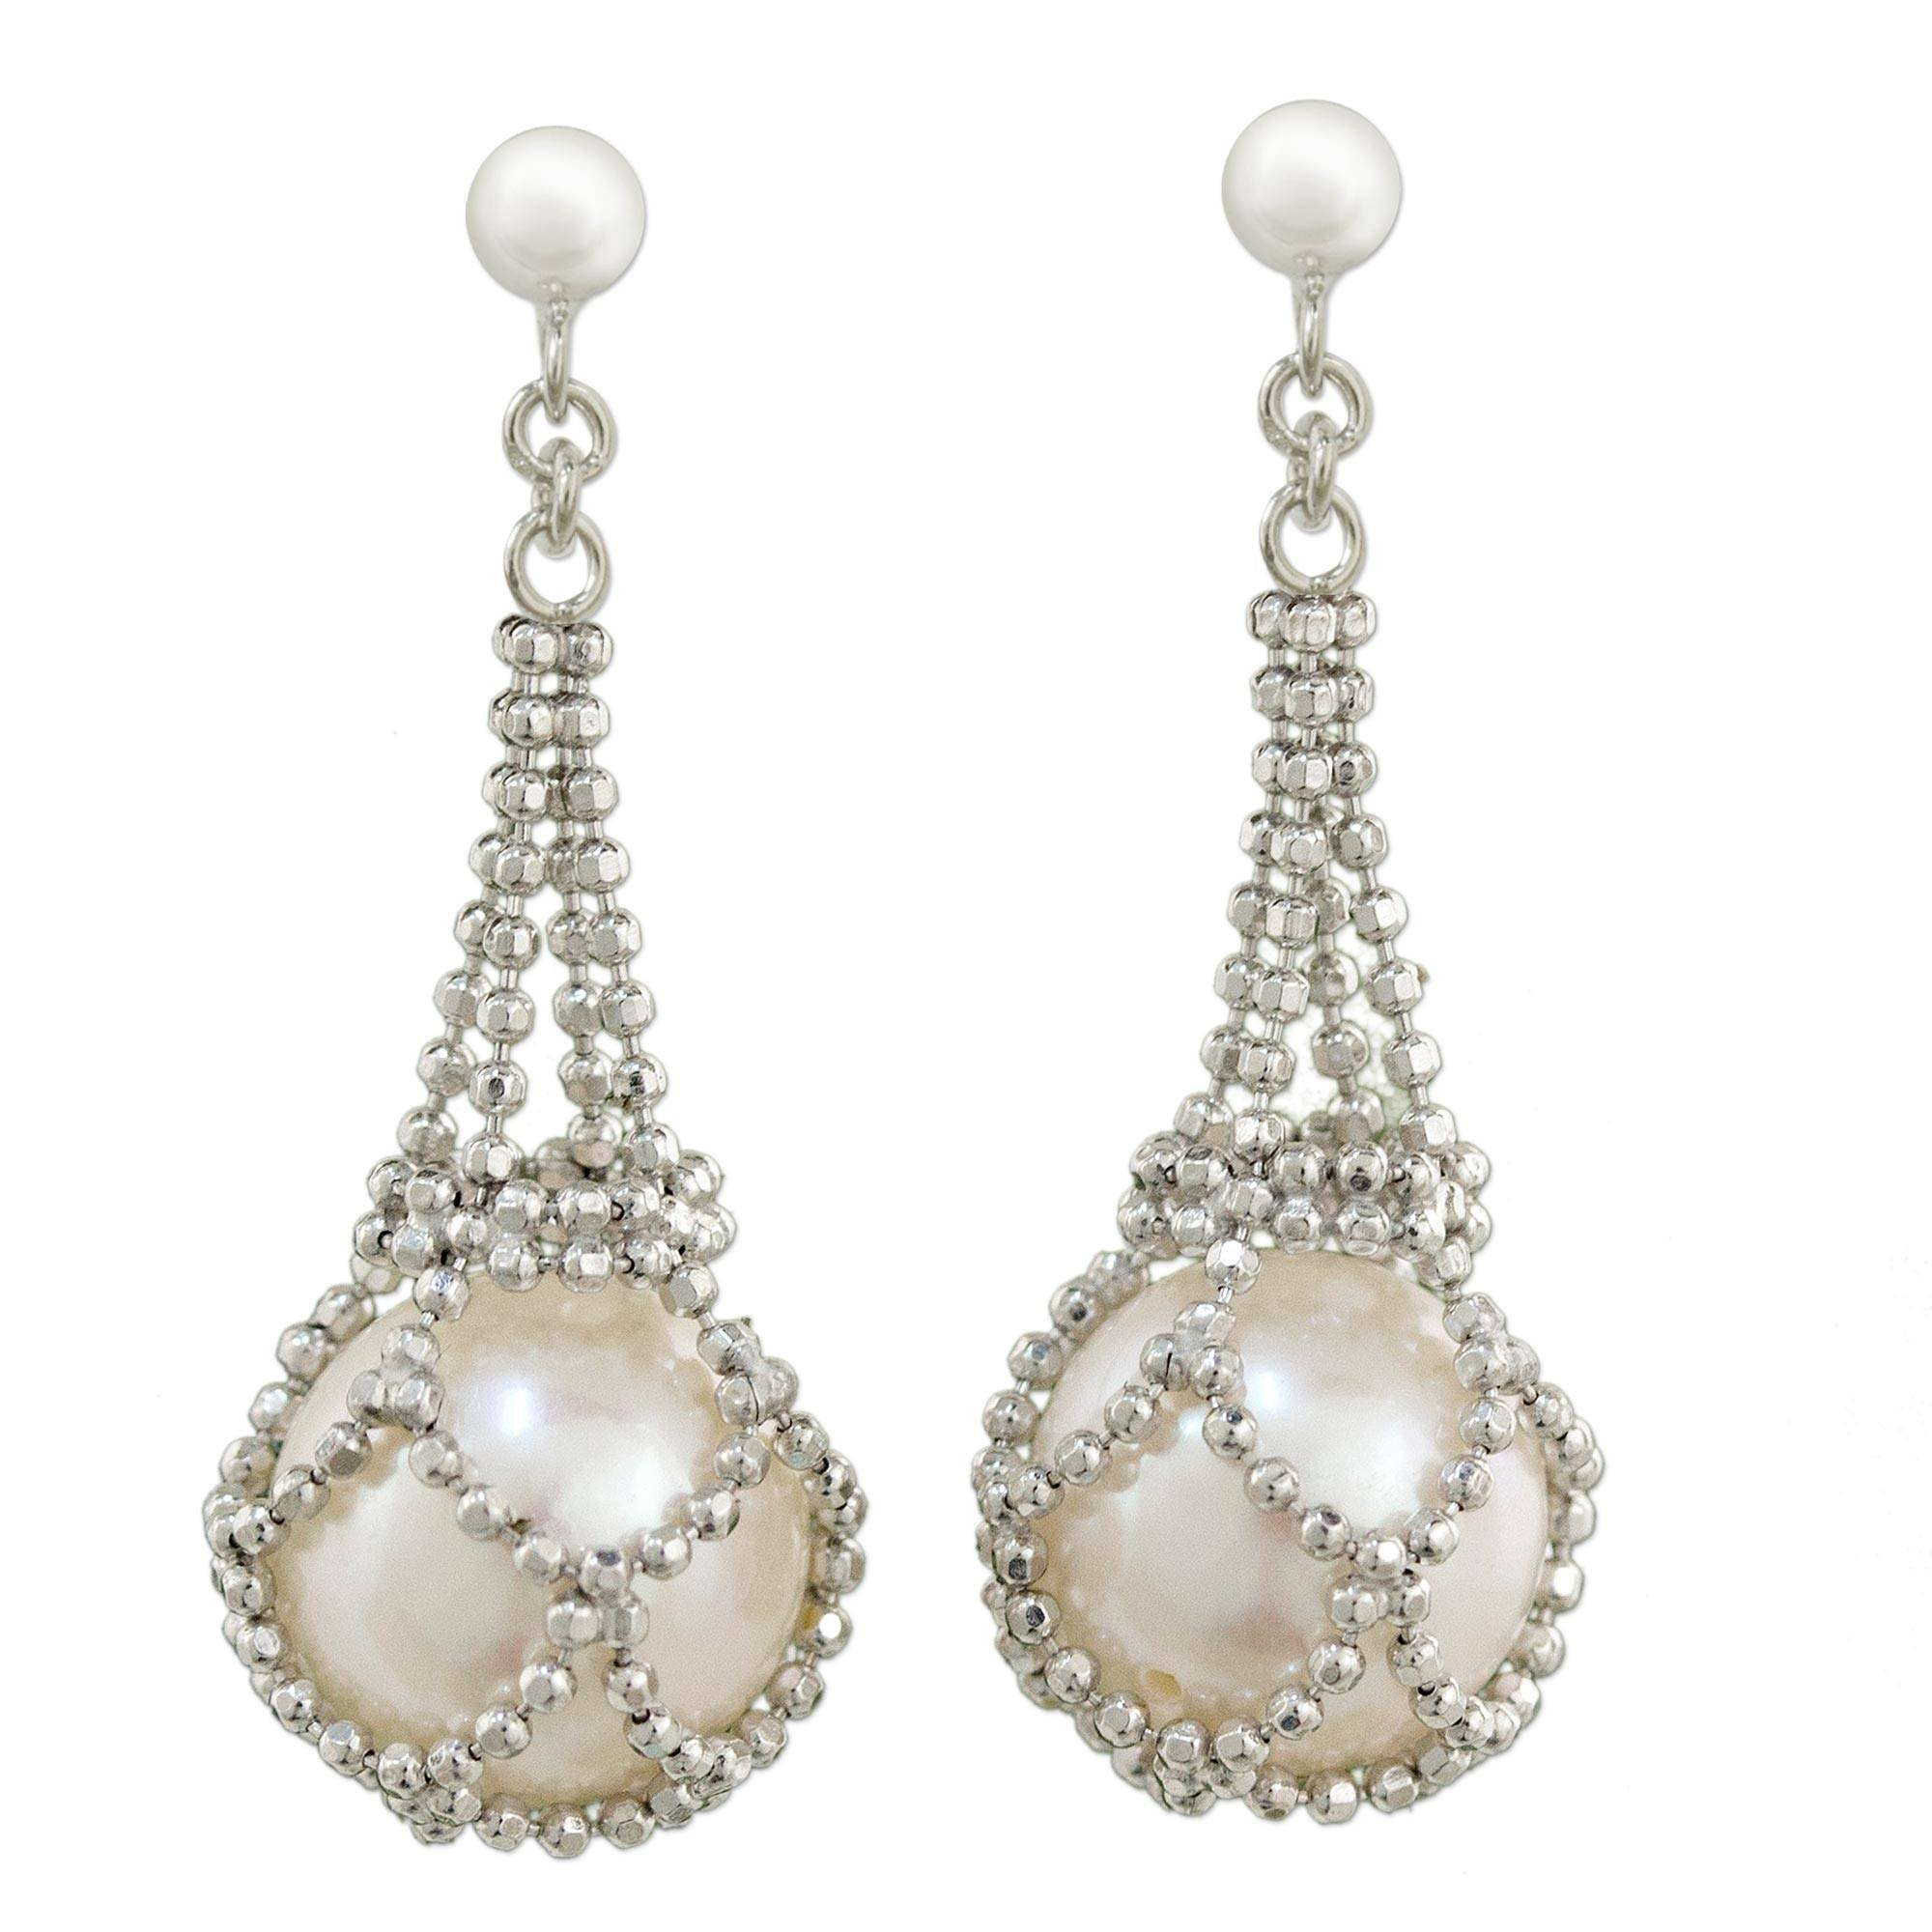 NOVICA White Cultured Freshwater Pearl .925 Sterling Silver Chandelier Earrings, Lily Dewdrop'